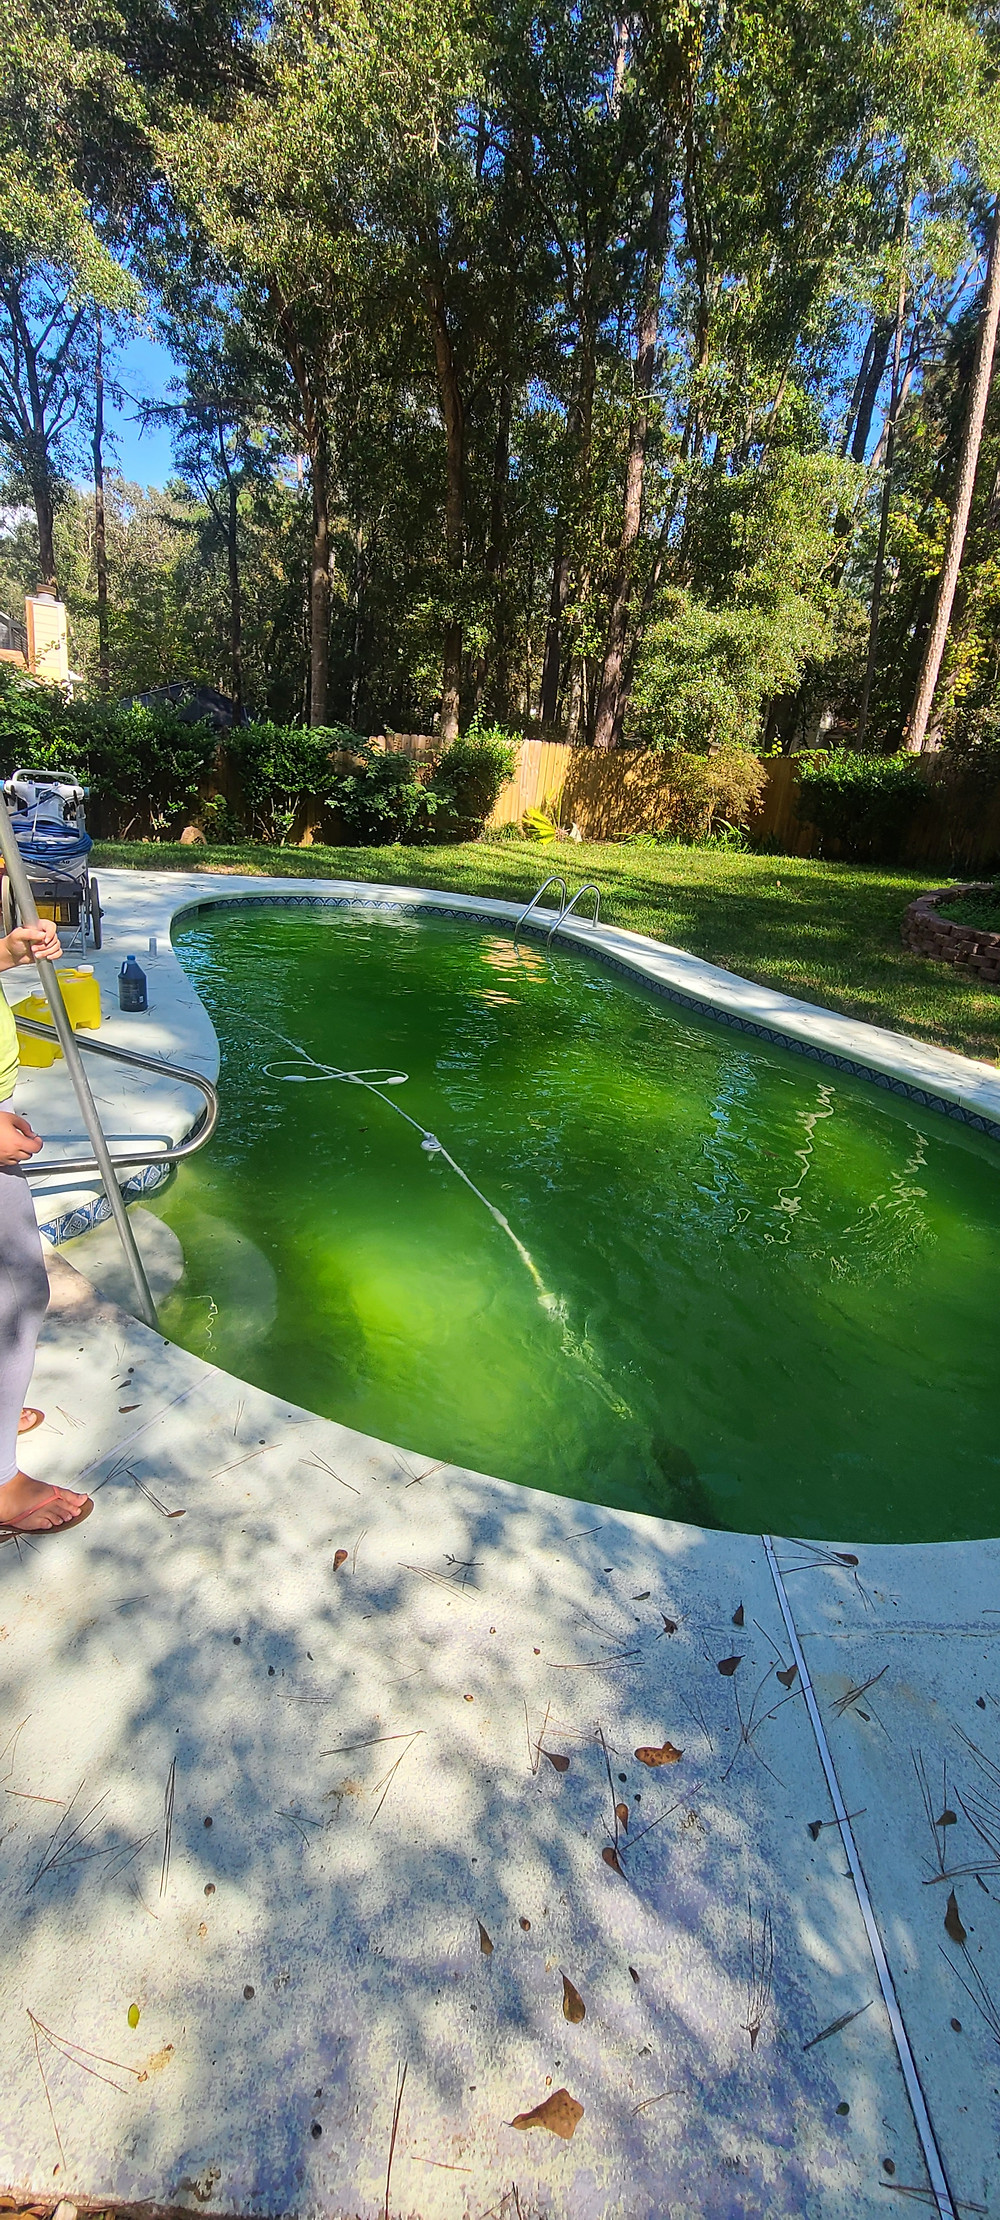 If your pool water turns green you will need to lower your pH, shock the pool water, and filtrate for 24-48 hours